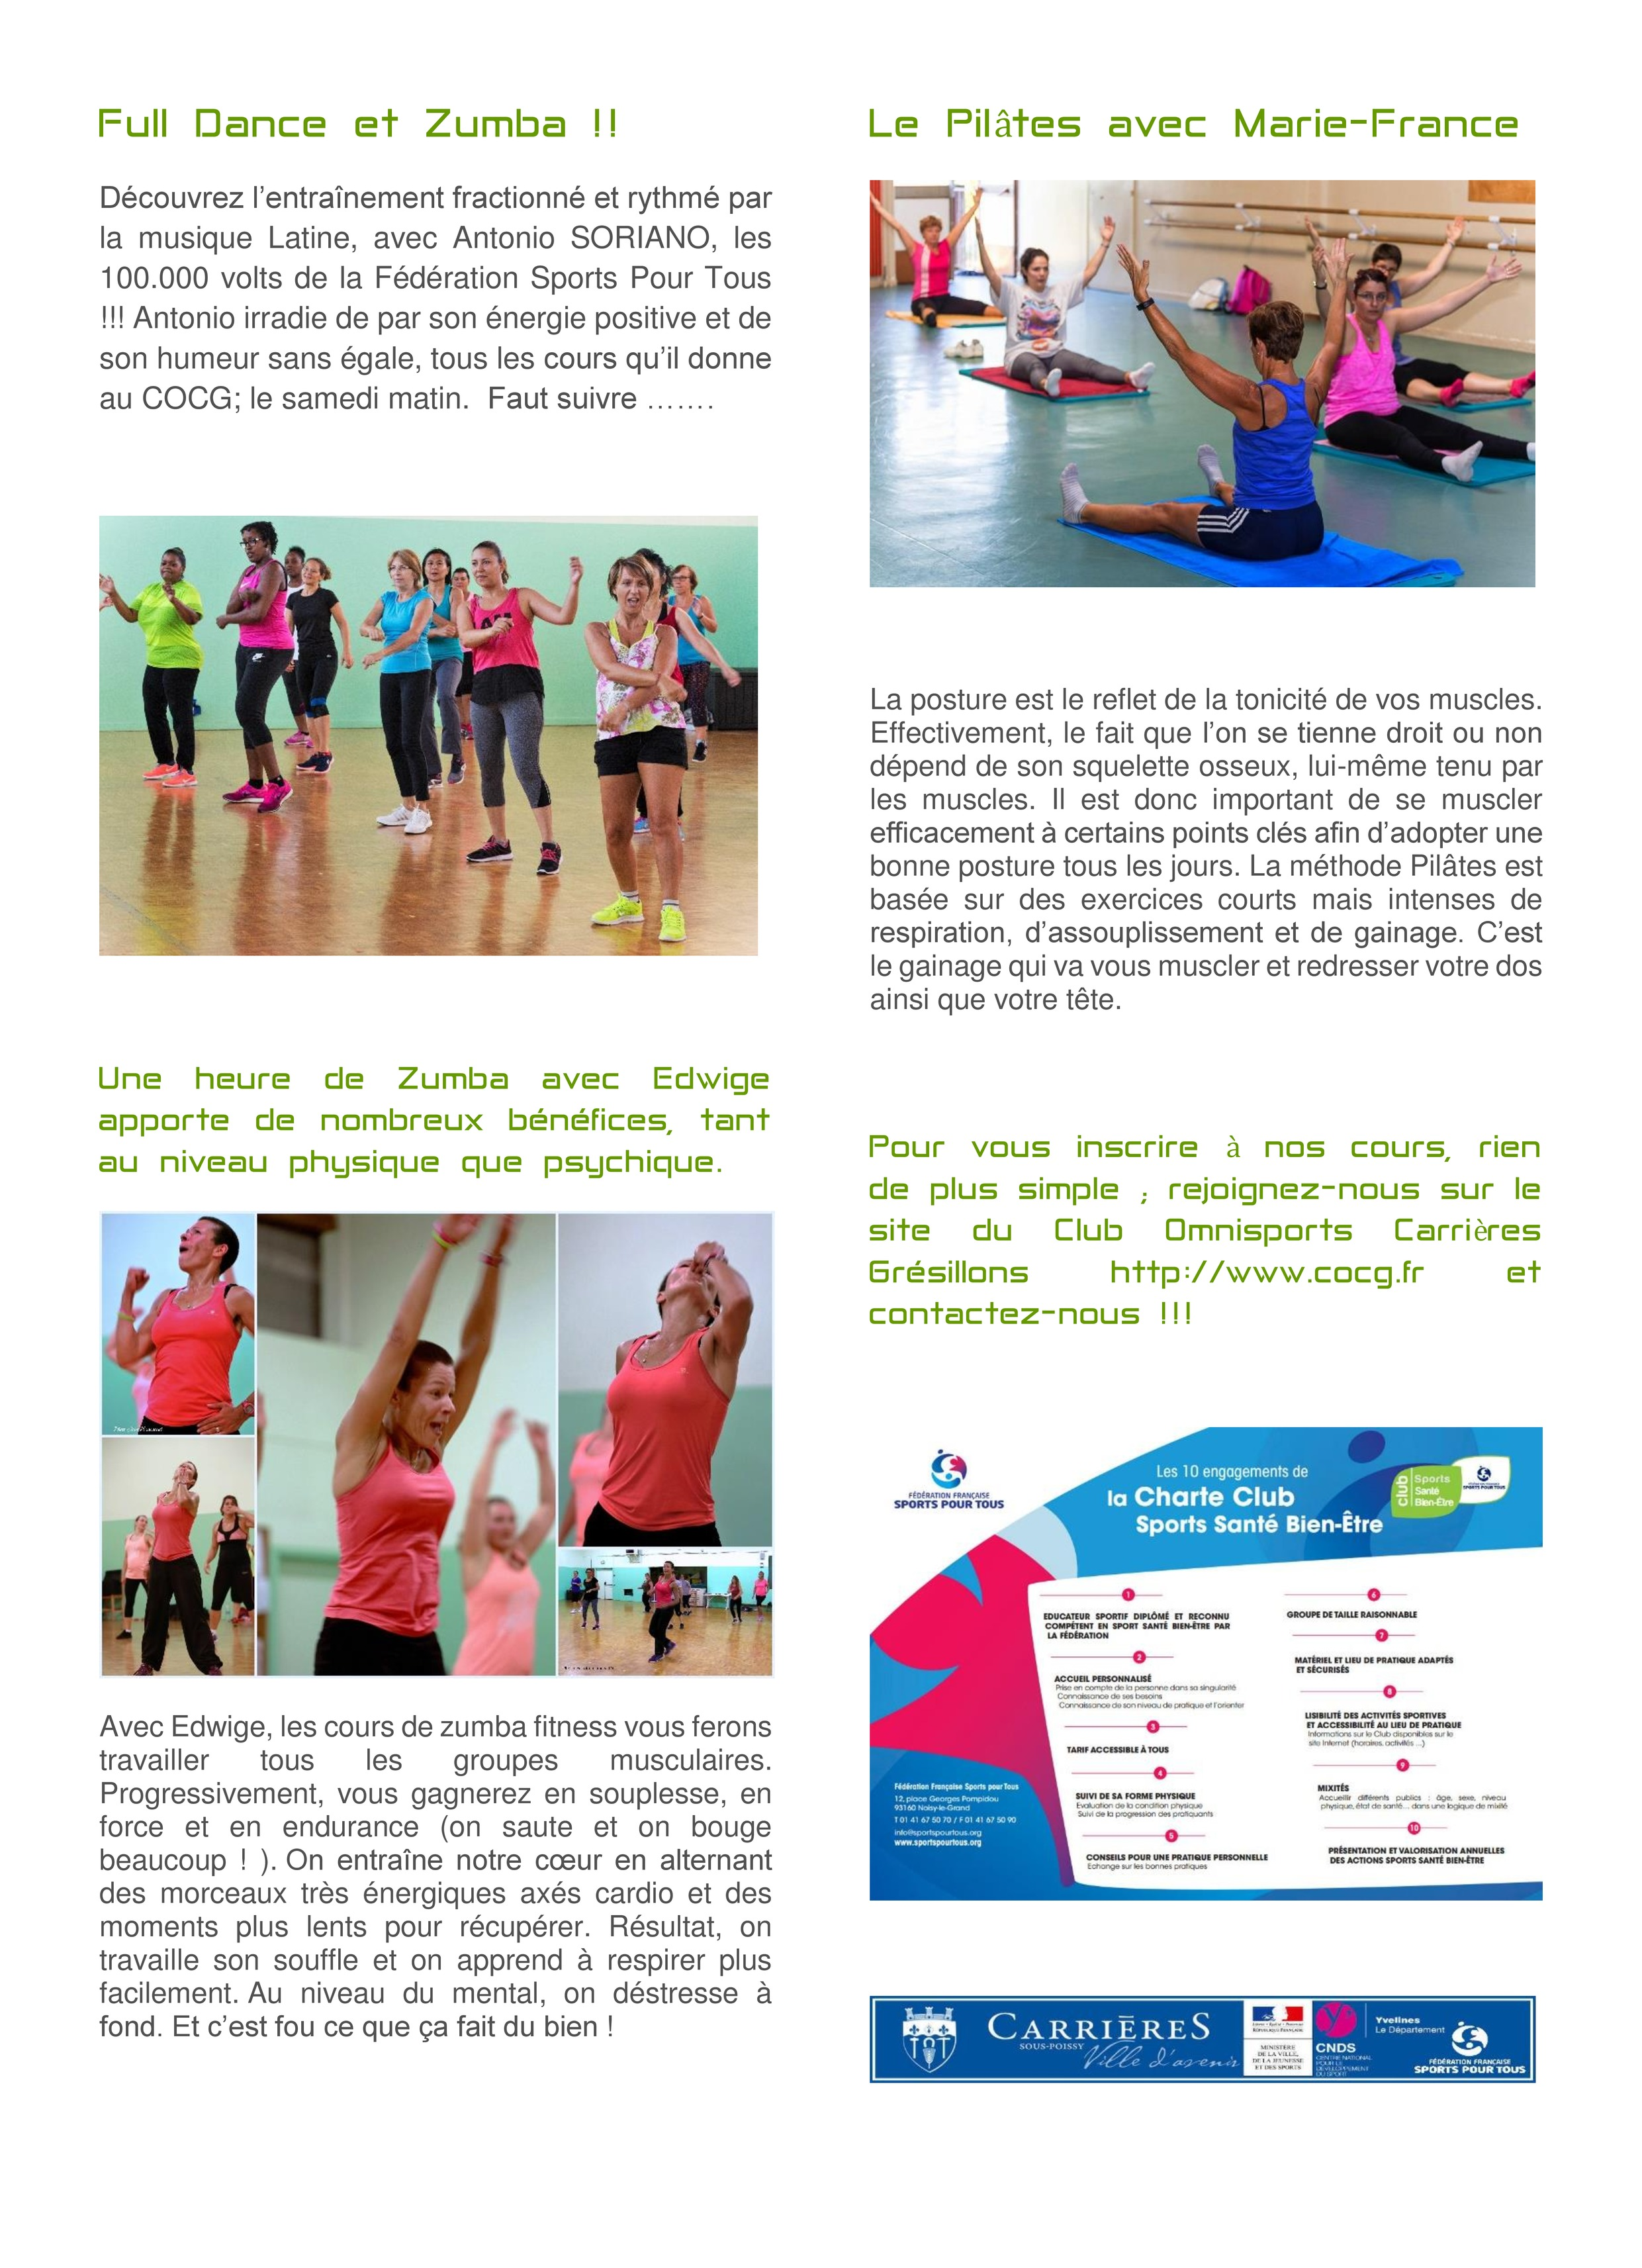 affiche_full_dance_et_zumba_champfleury-page0